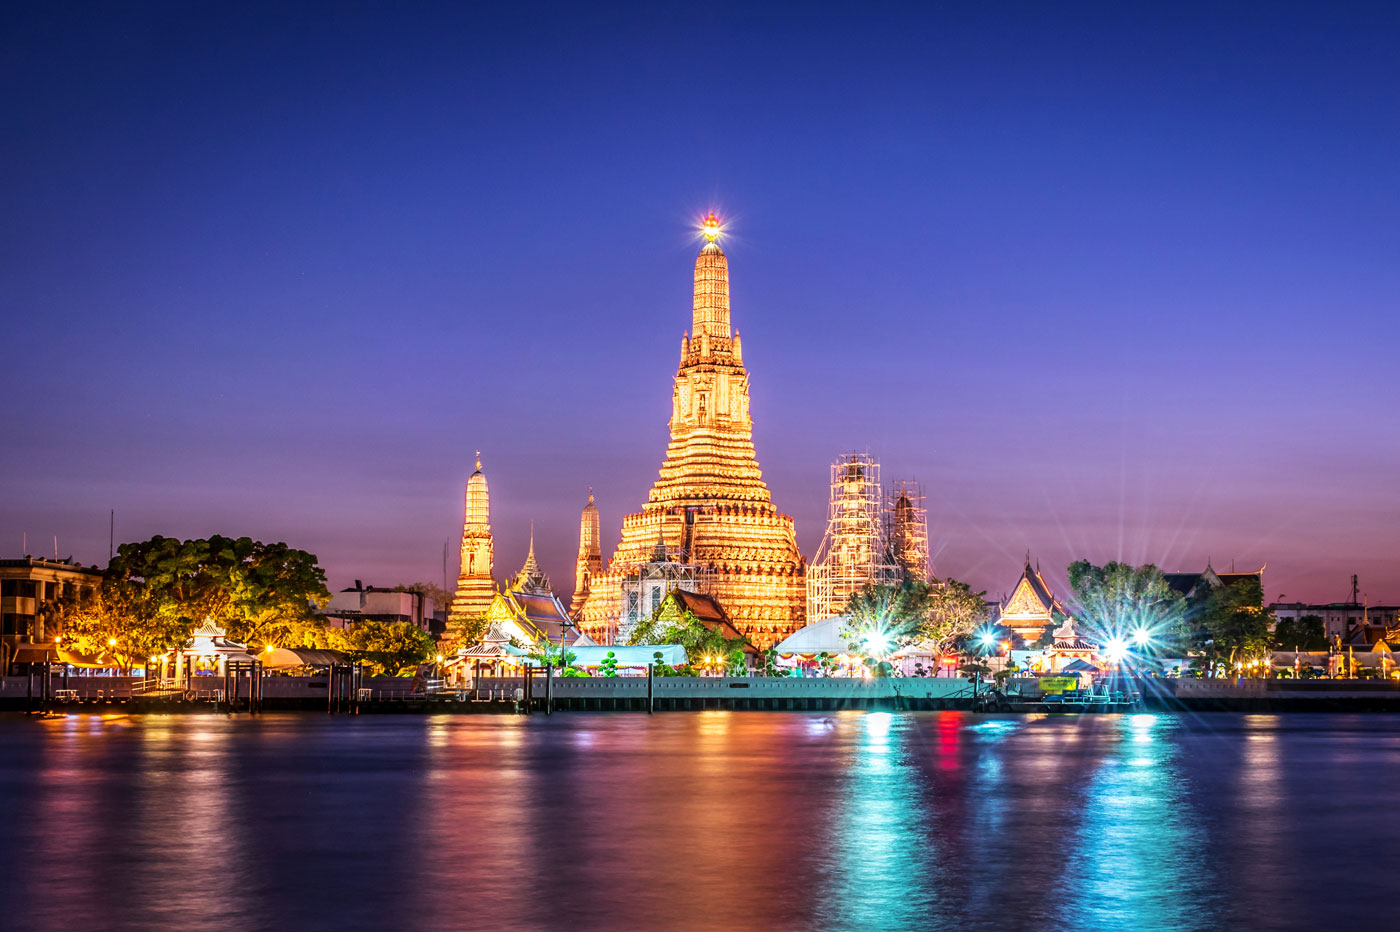 Favourite Bangkok Pattaya Magical Frost Wisata Dunia Travelosta Tiket Masuk Of Siam Adult